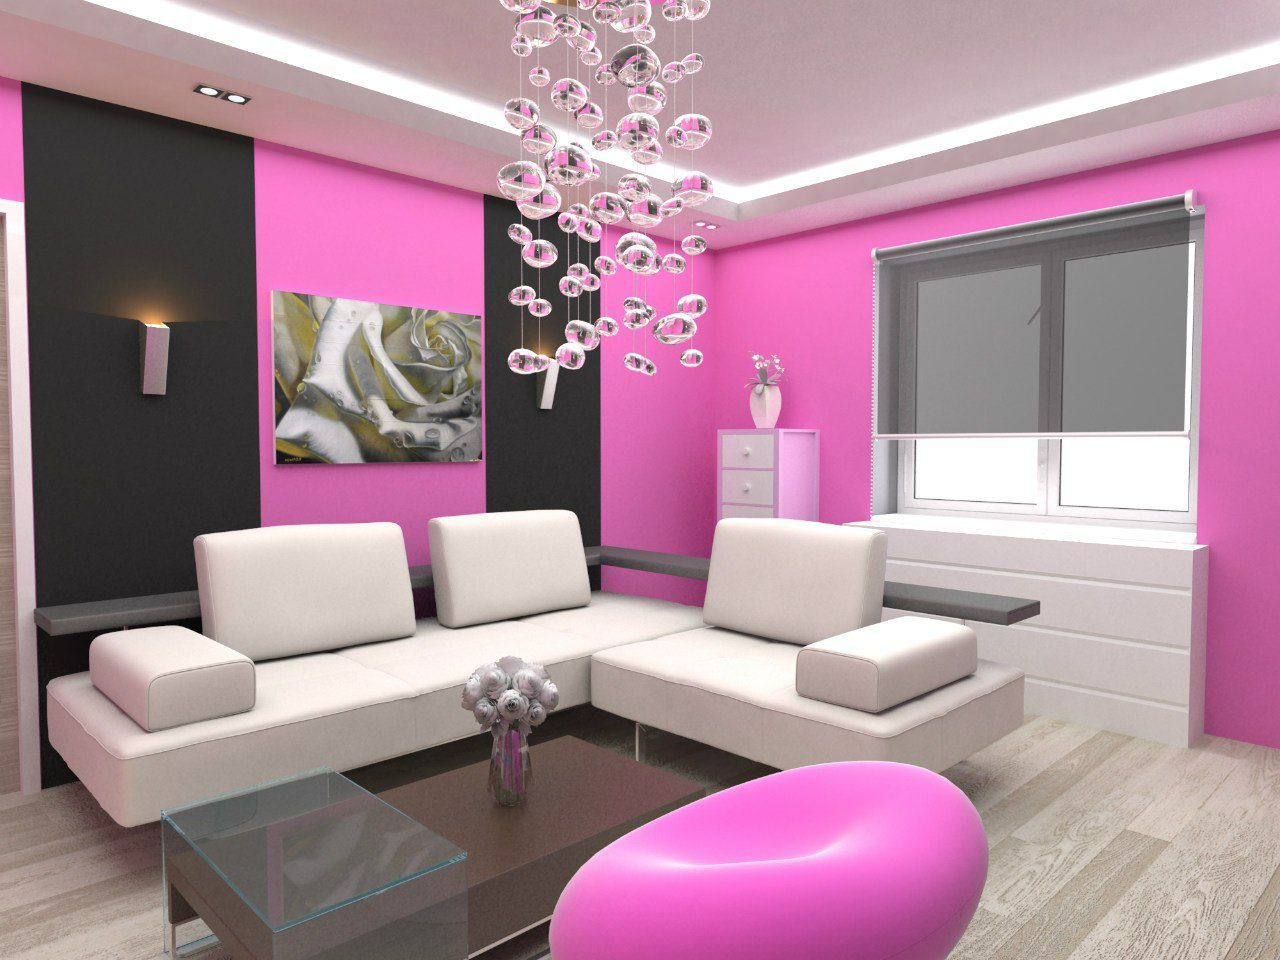 Wall Paints For Living Room Pretty Living Room Paint Idea With Pink And Black Painted Wall And